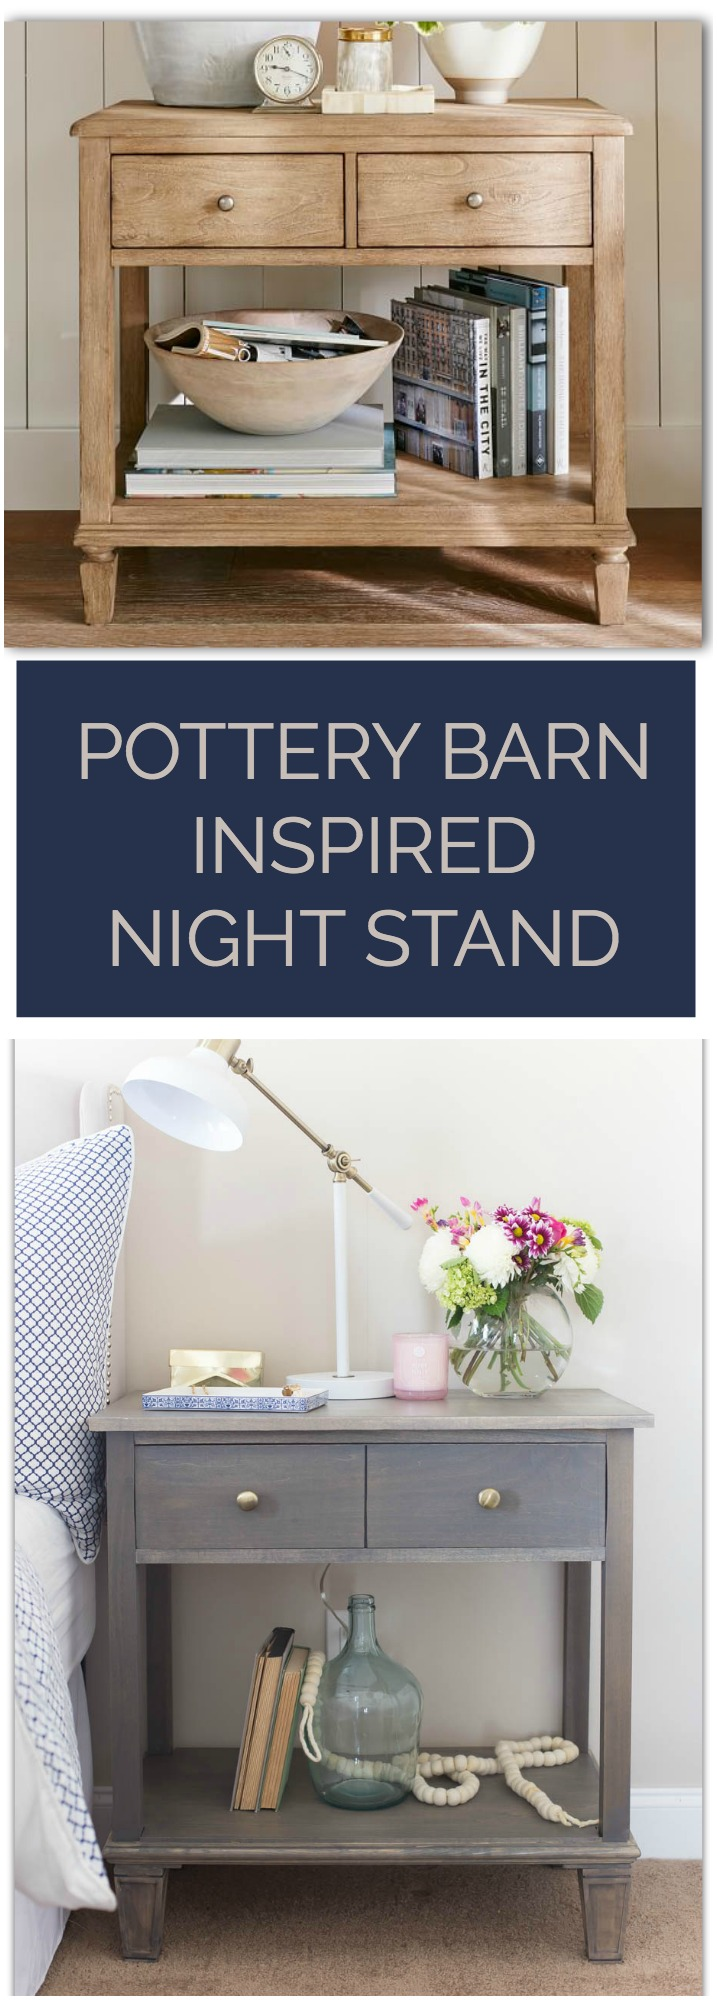 with photos pottery barn stands mostbeautifulthings designed nightstands barns night great